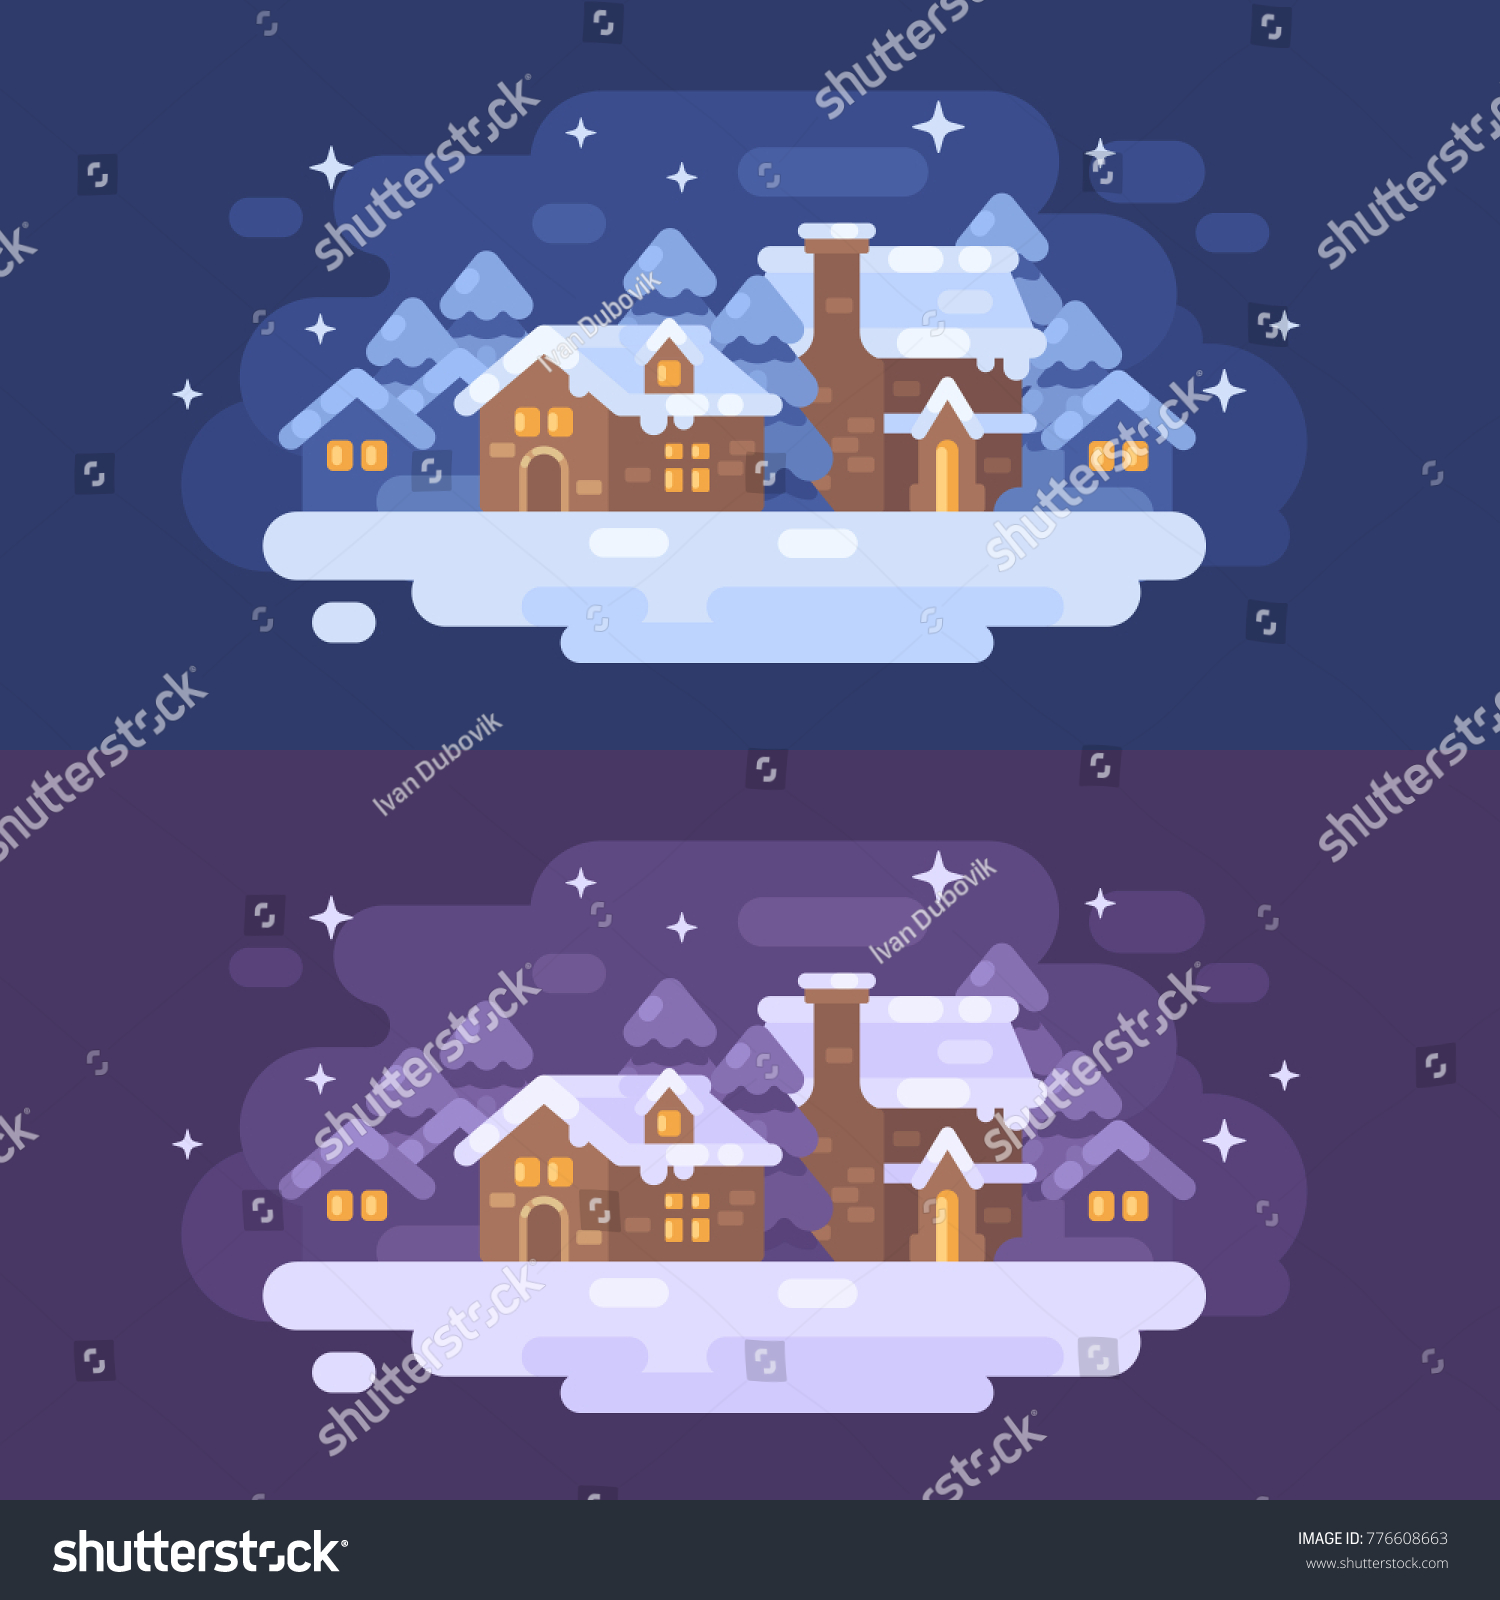 Snowy Winter Village Landscape Flat Illustration Christmas Greeting